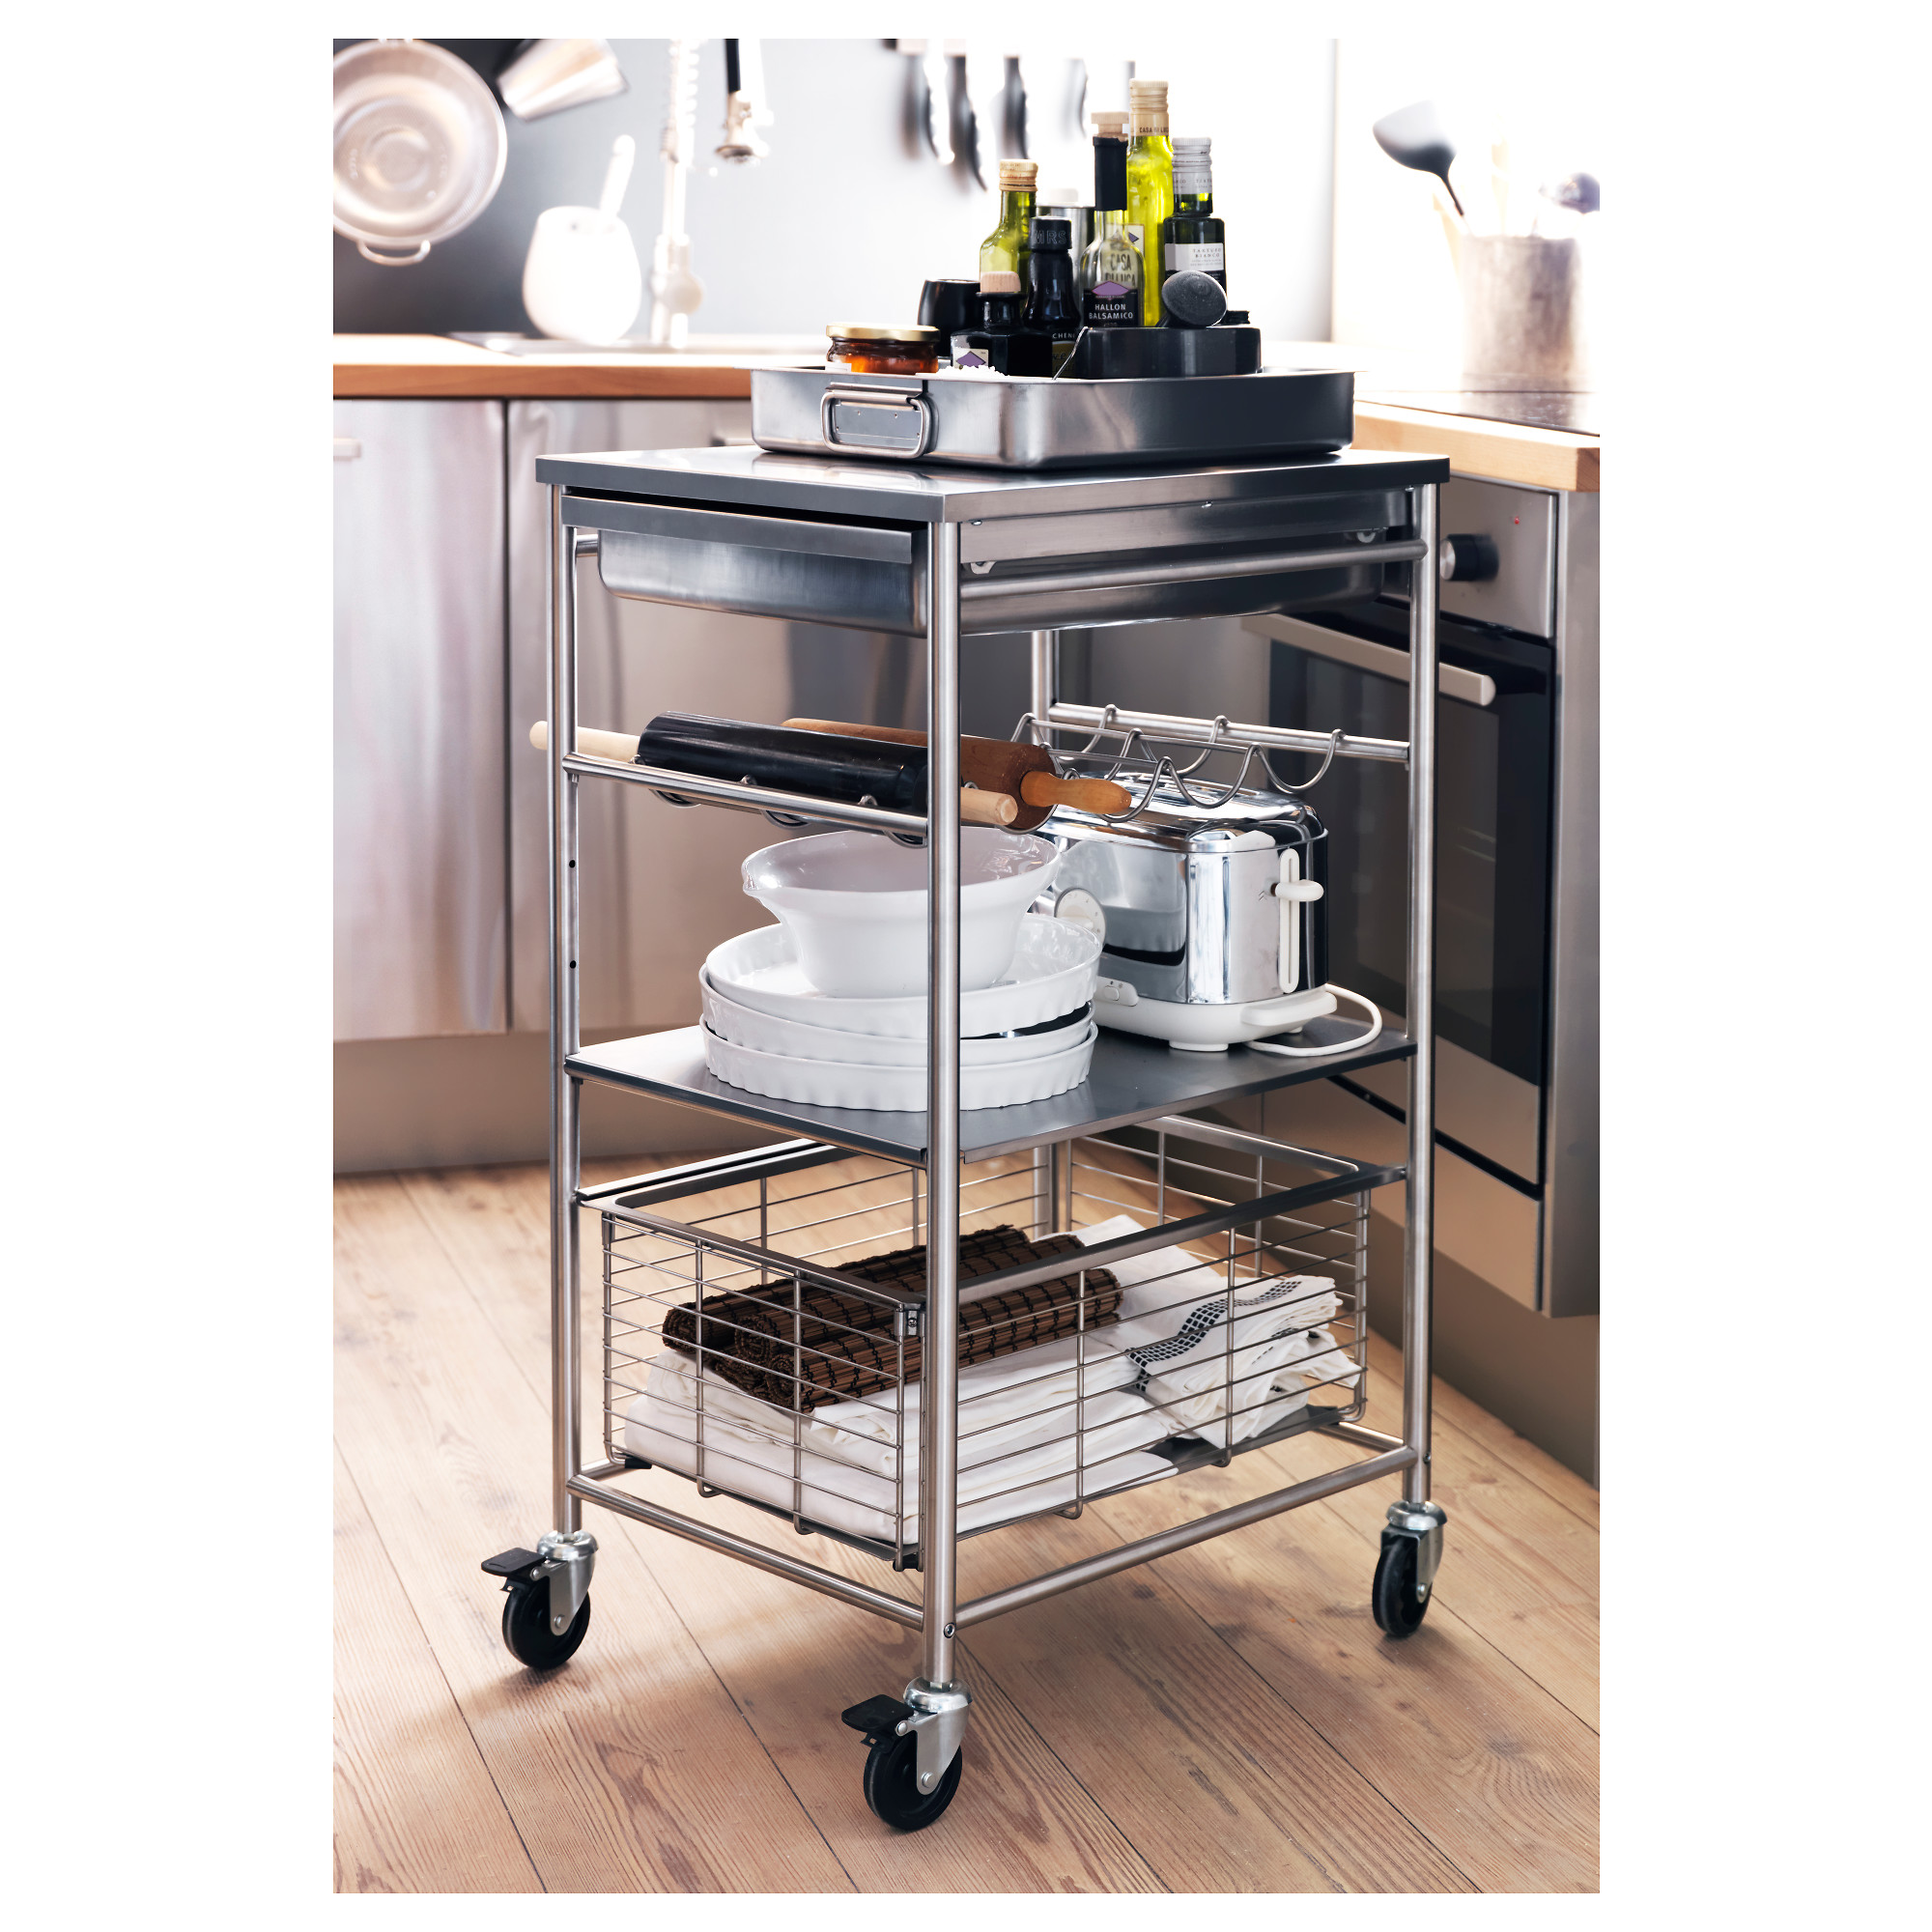 Creative microwave cart ikea for kitchen with microwave cart with storage ikea